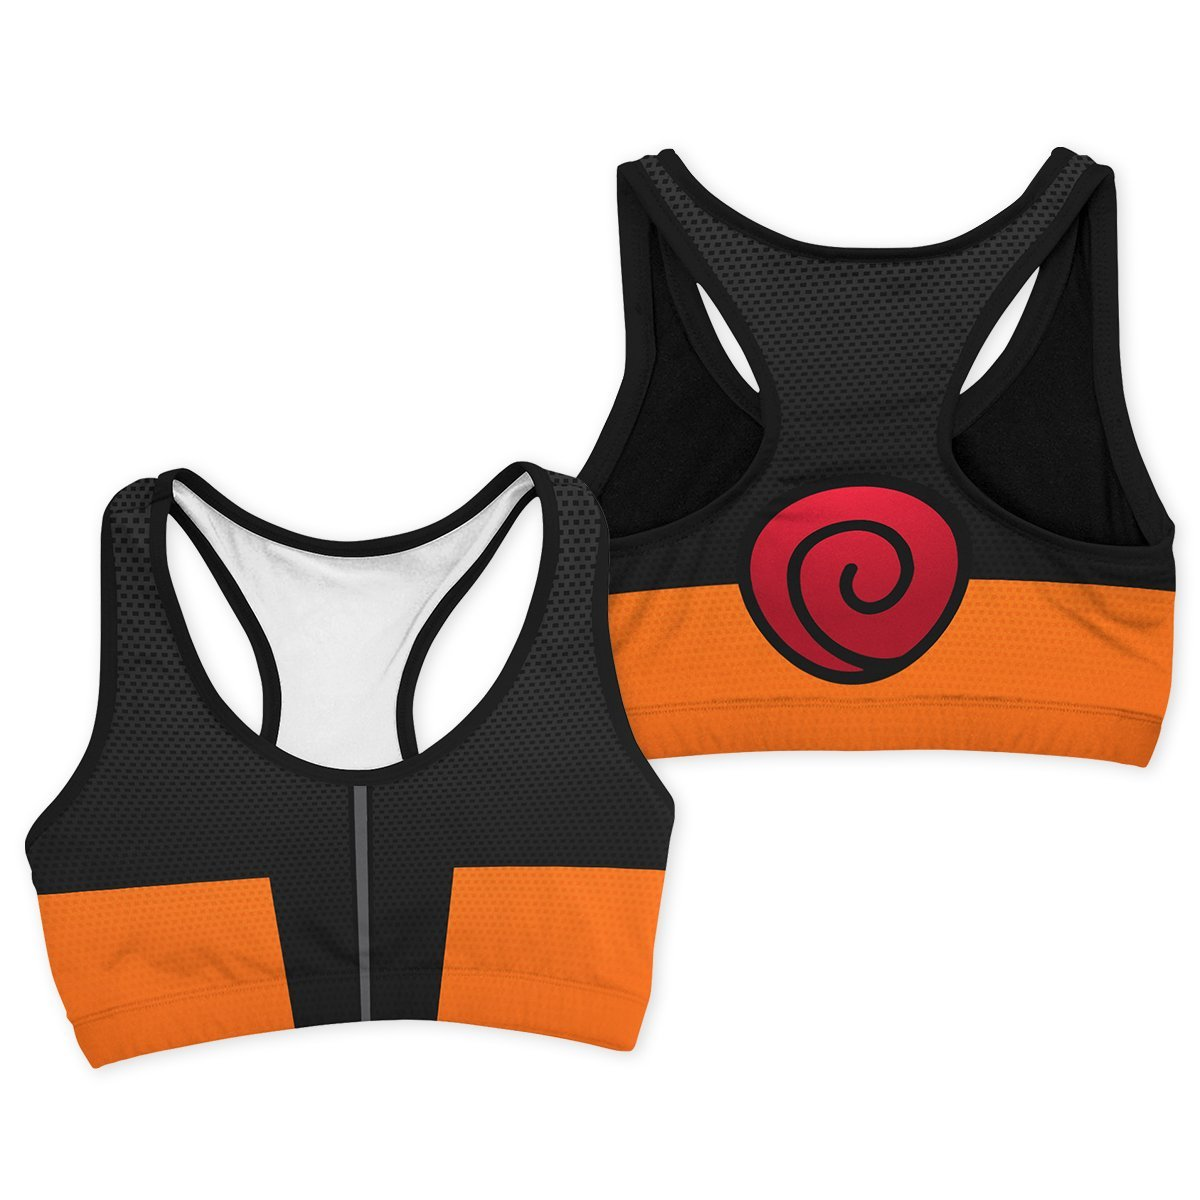 Sports Bra Only Official Anime Swimsuit Merch